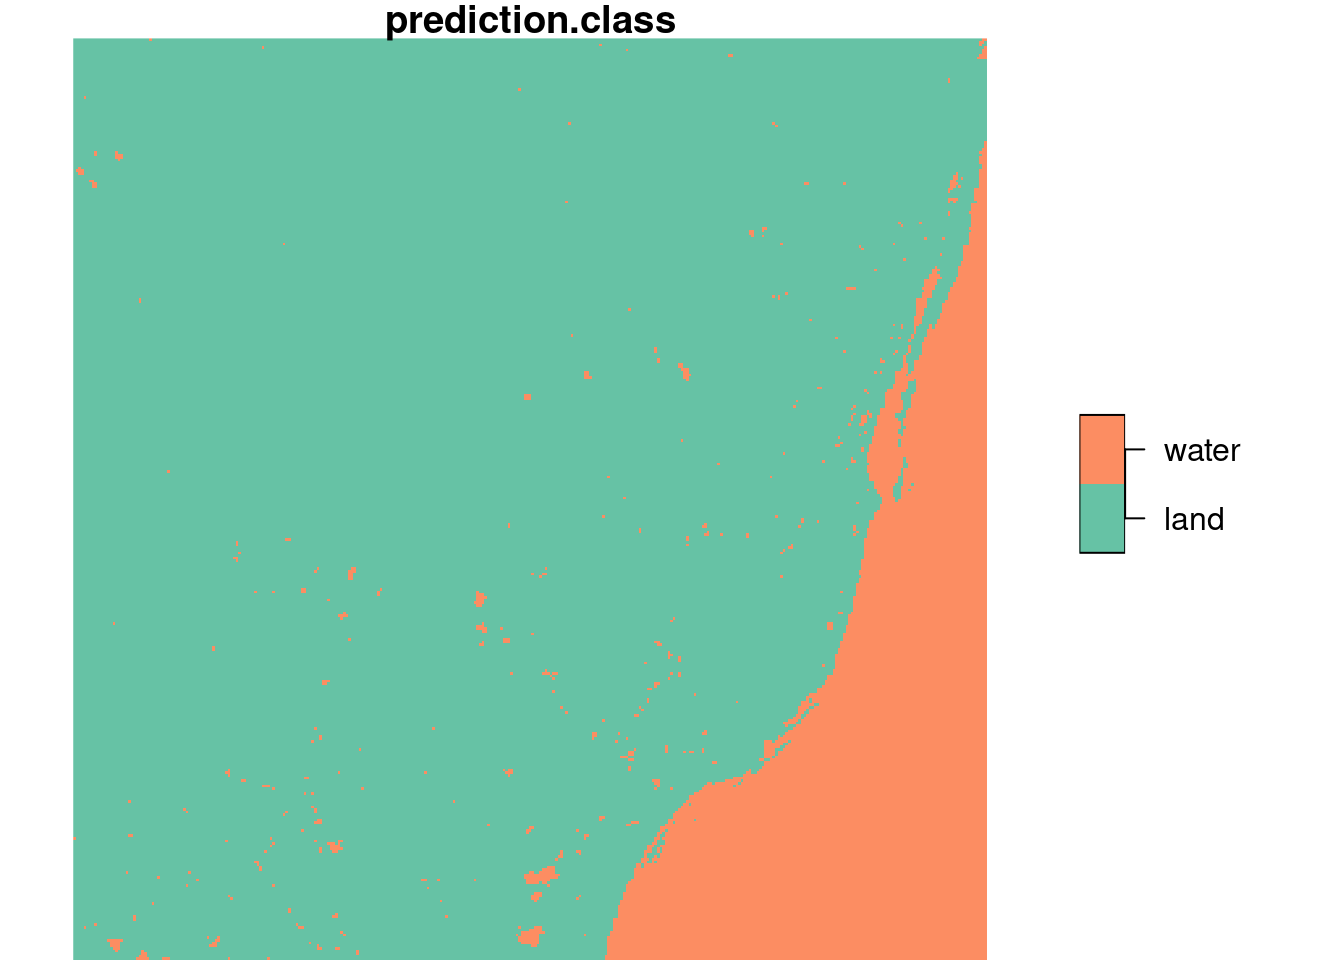 Linear discriminant classifier for land/water, based on training data of figure 7.6